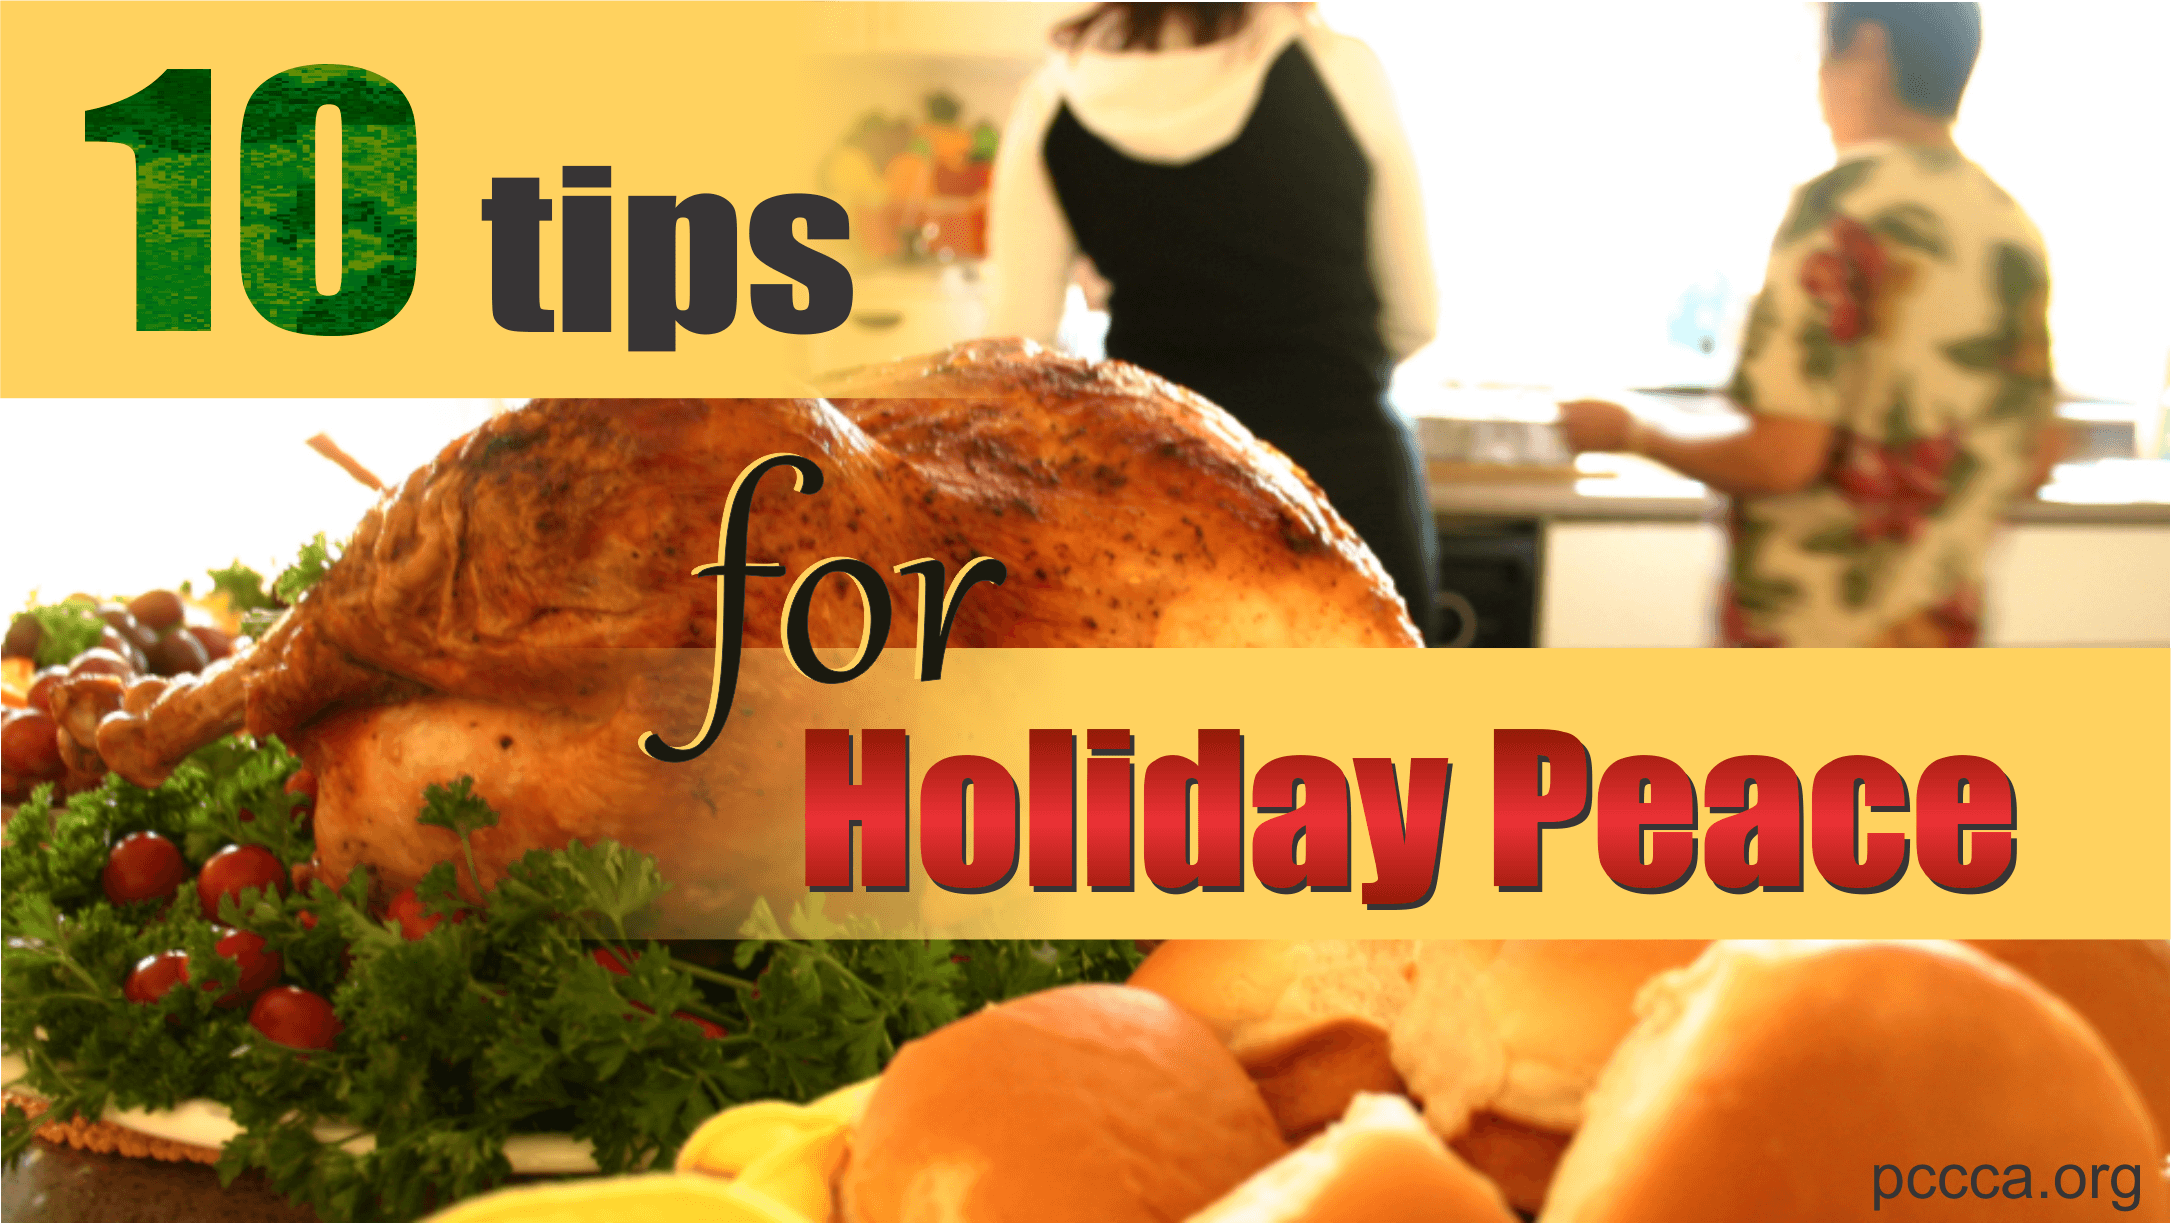 promote peace at holiday gatherings http://pccca.org